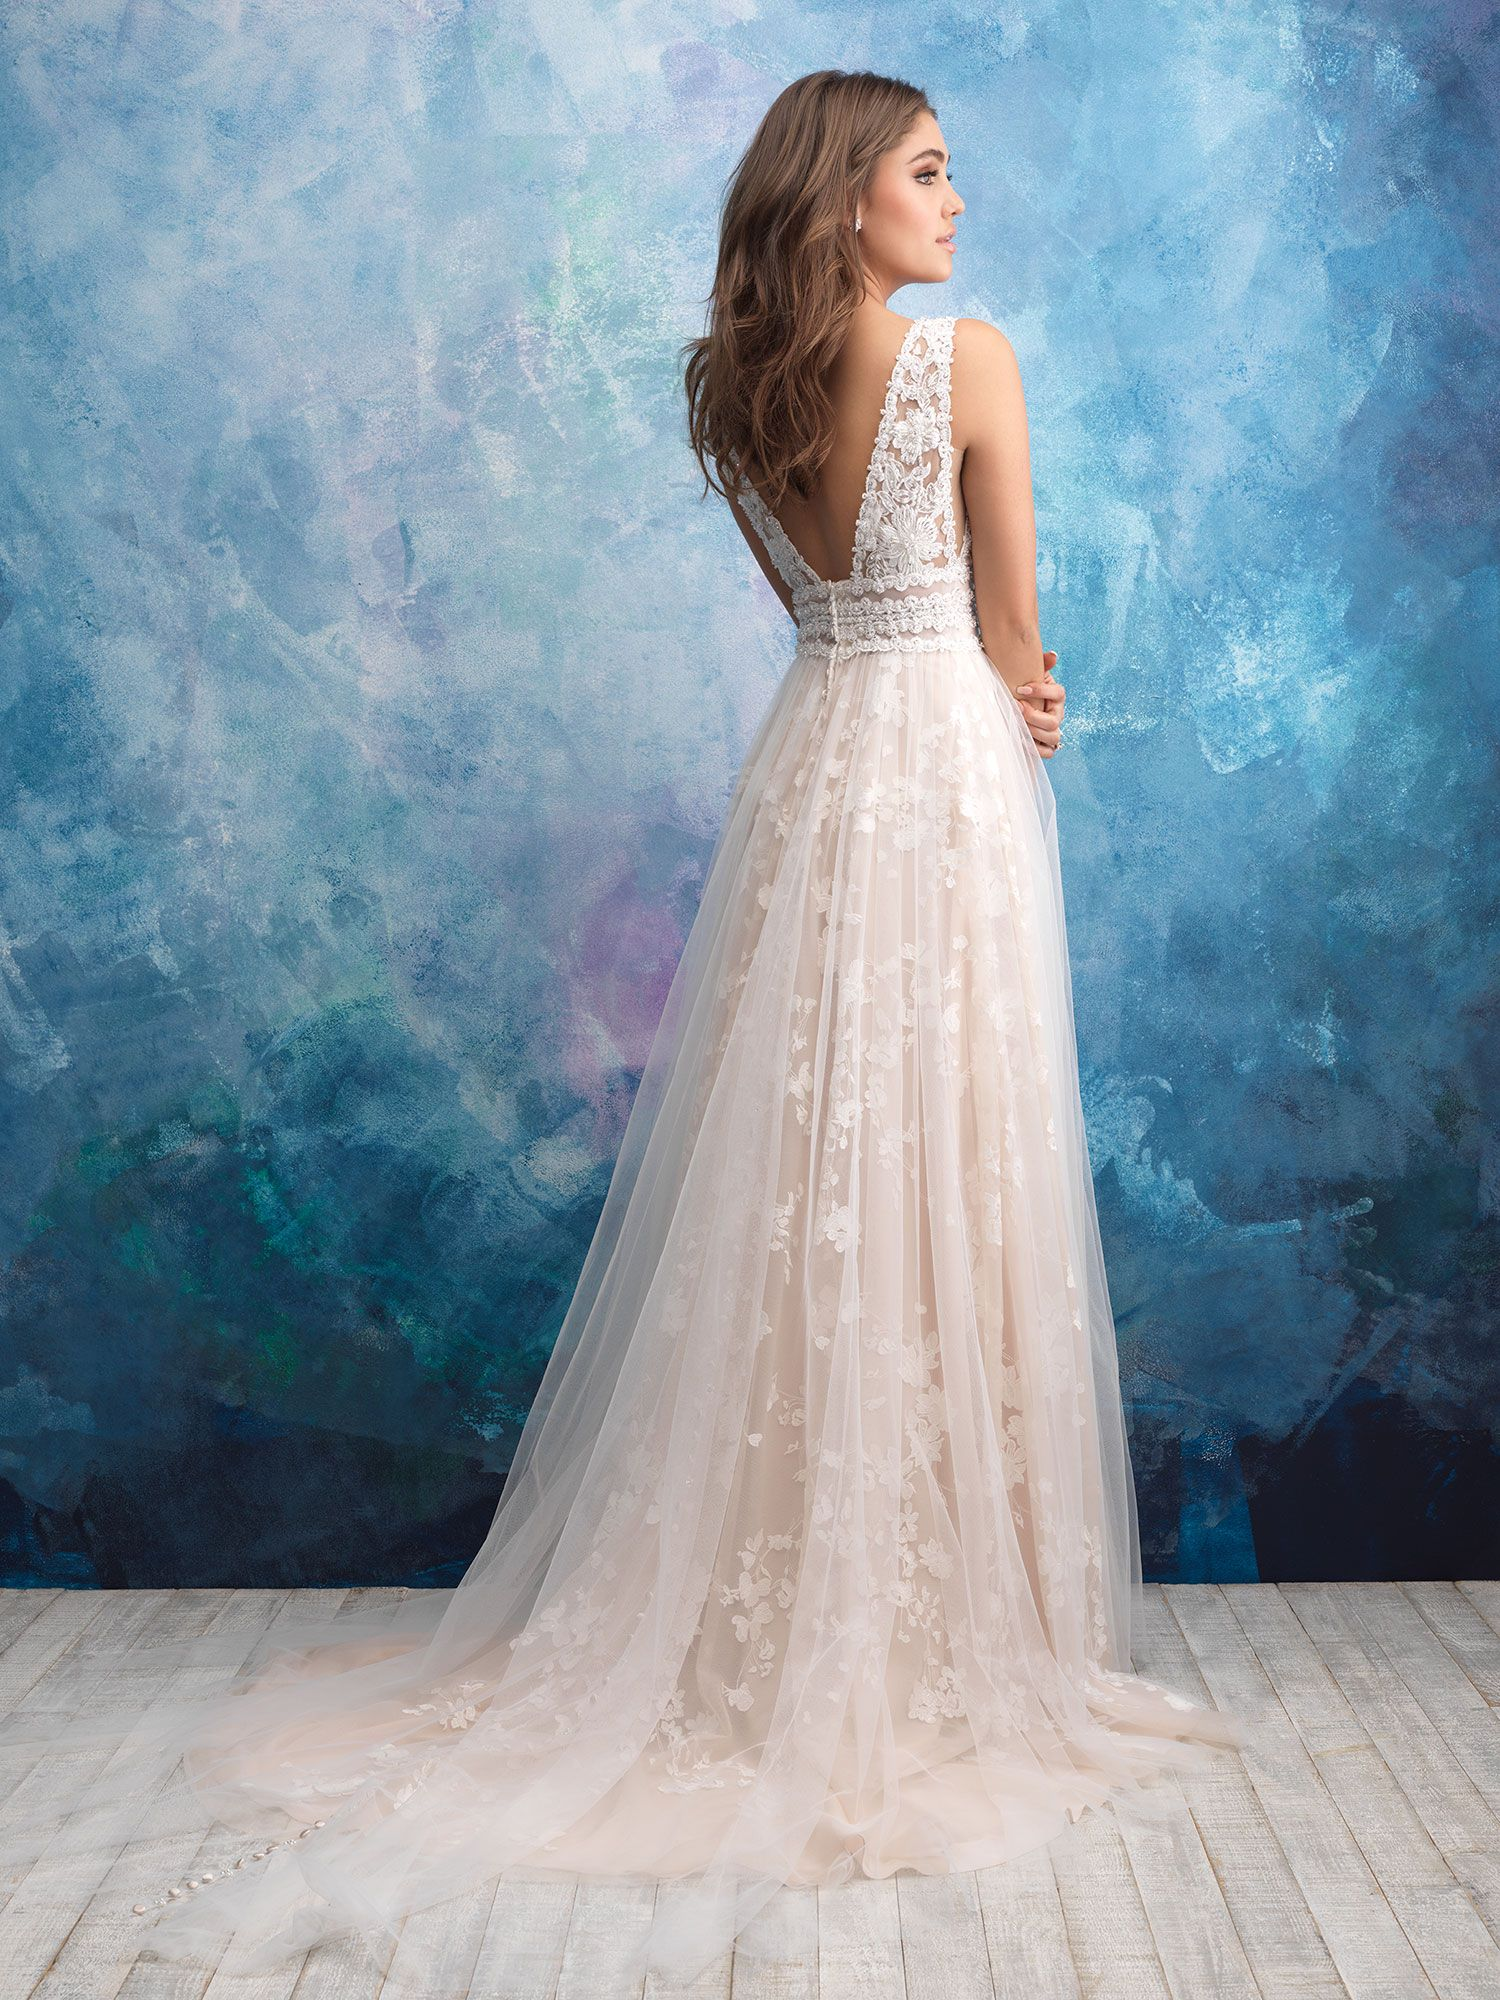 Eden Hoops A Daisy Bridal Boutique In 2020 Allure Bridal Gowns Allure Bridal Allure Bridal Wedding